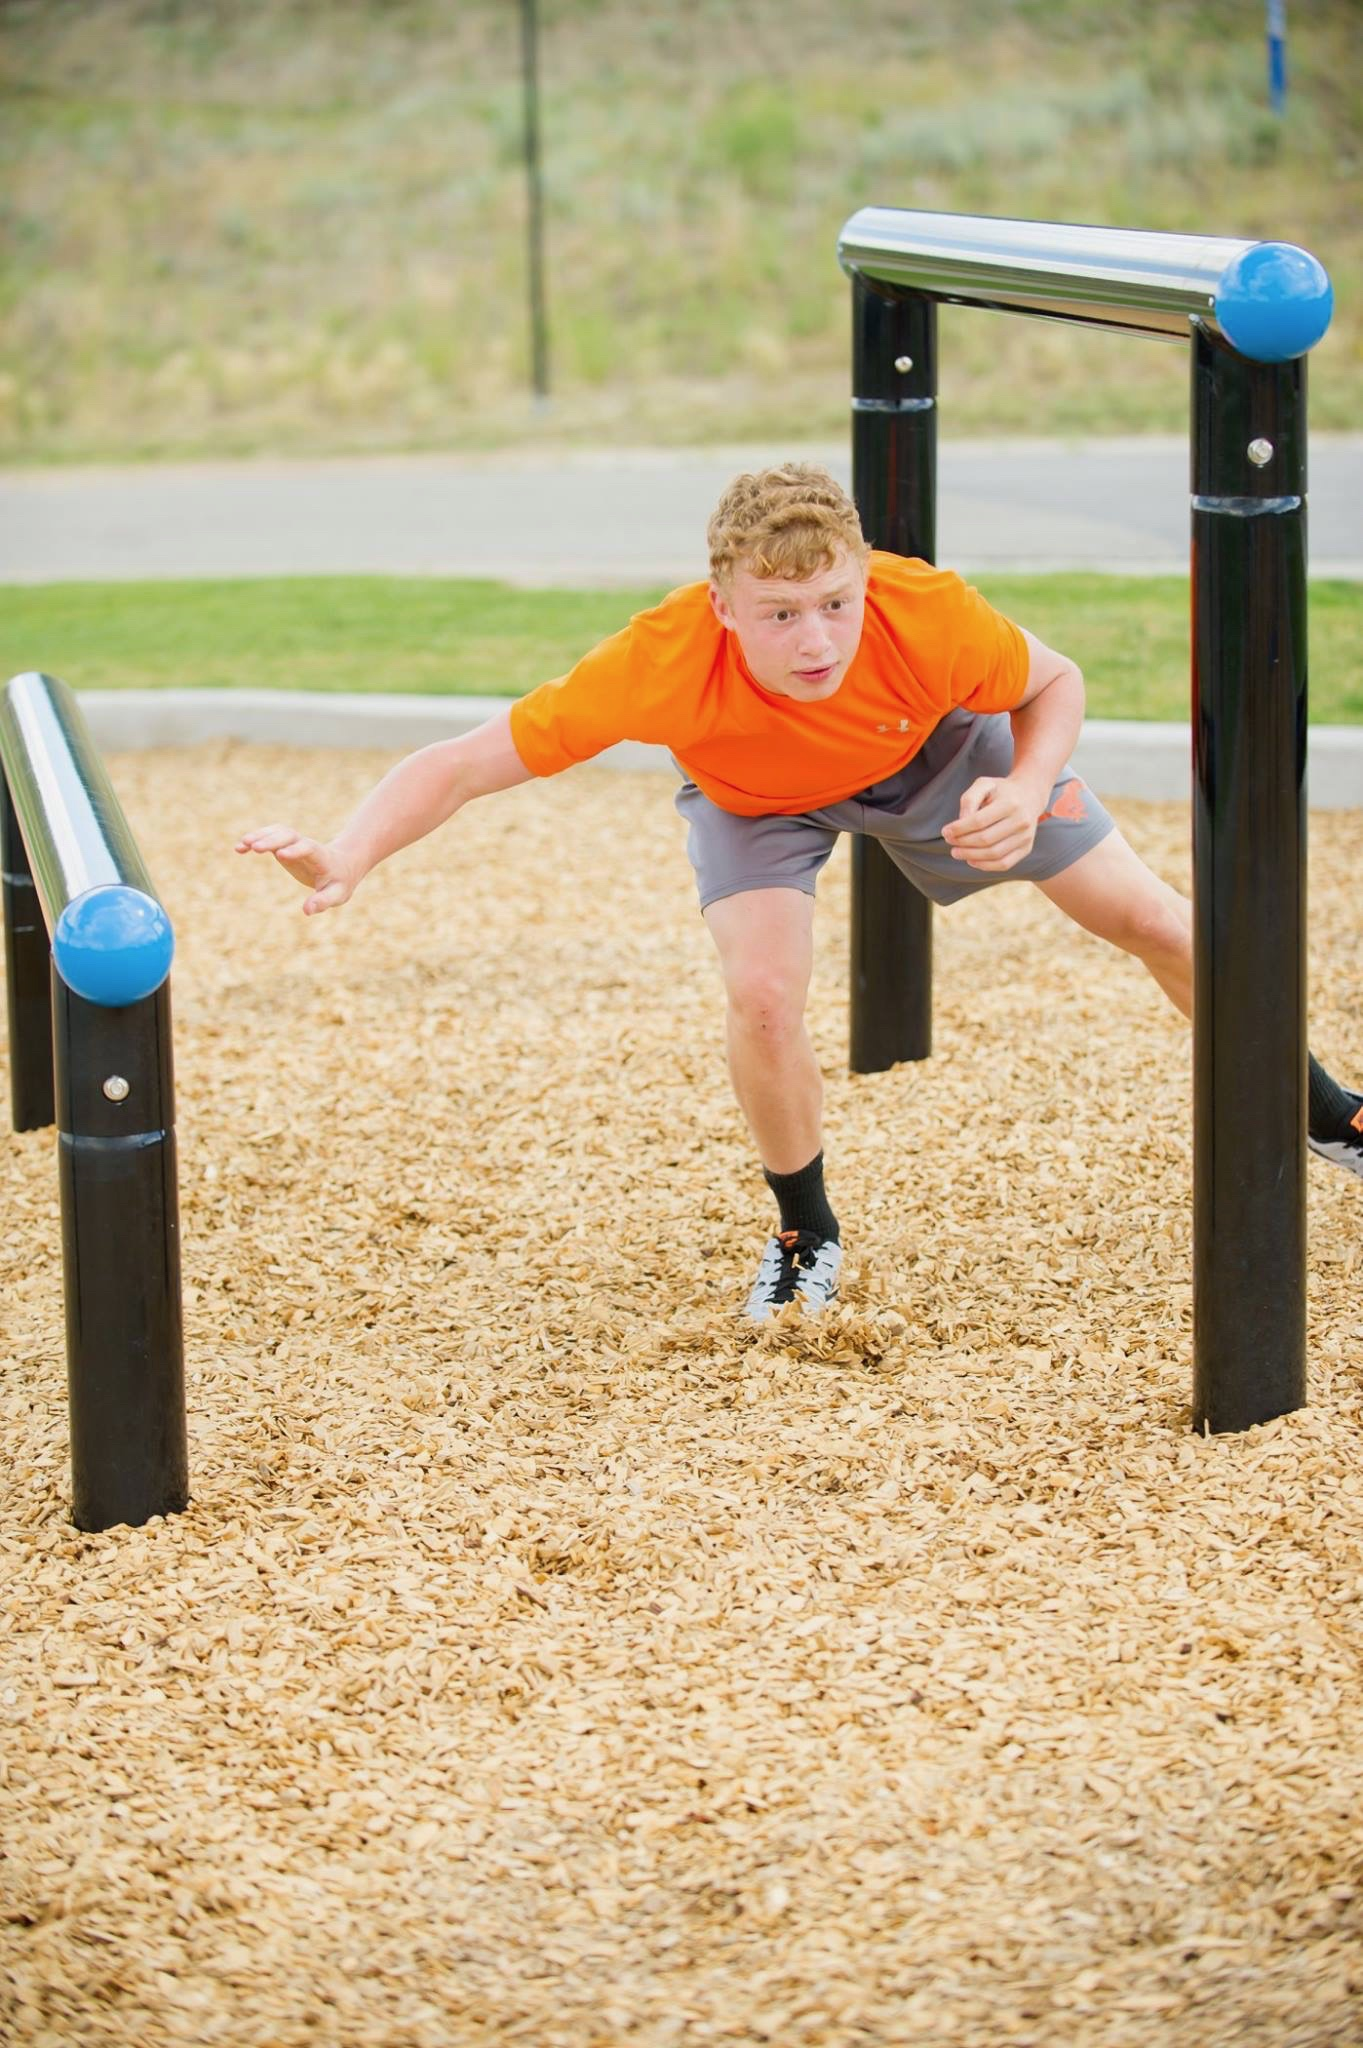 Copy of Over/Under Agility and balance obstacle